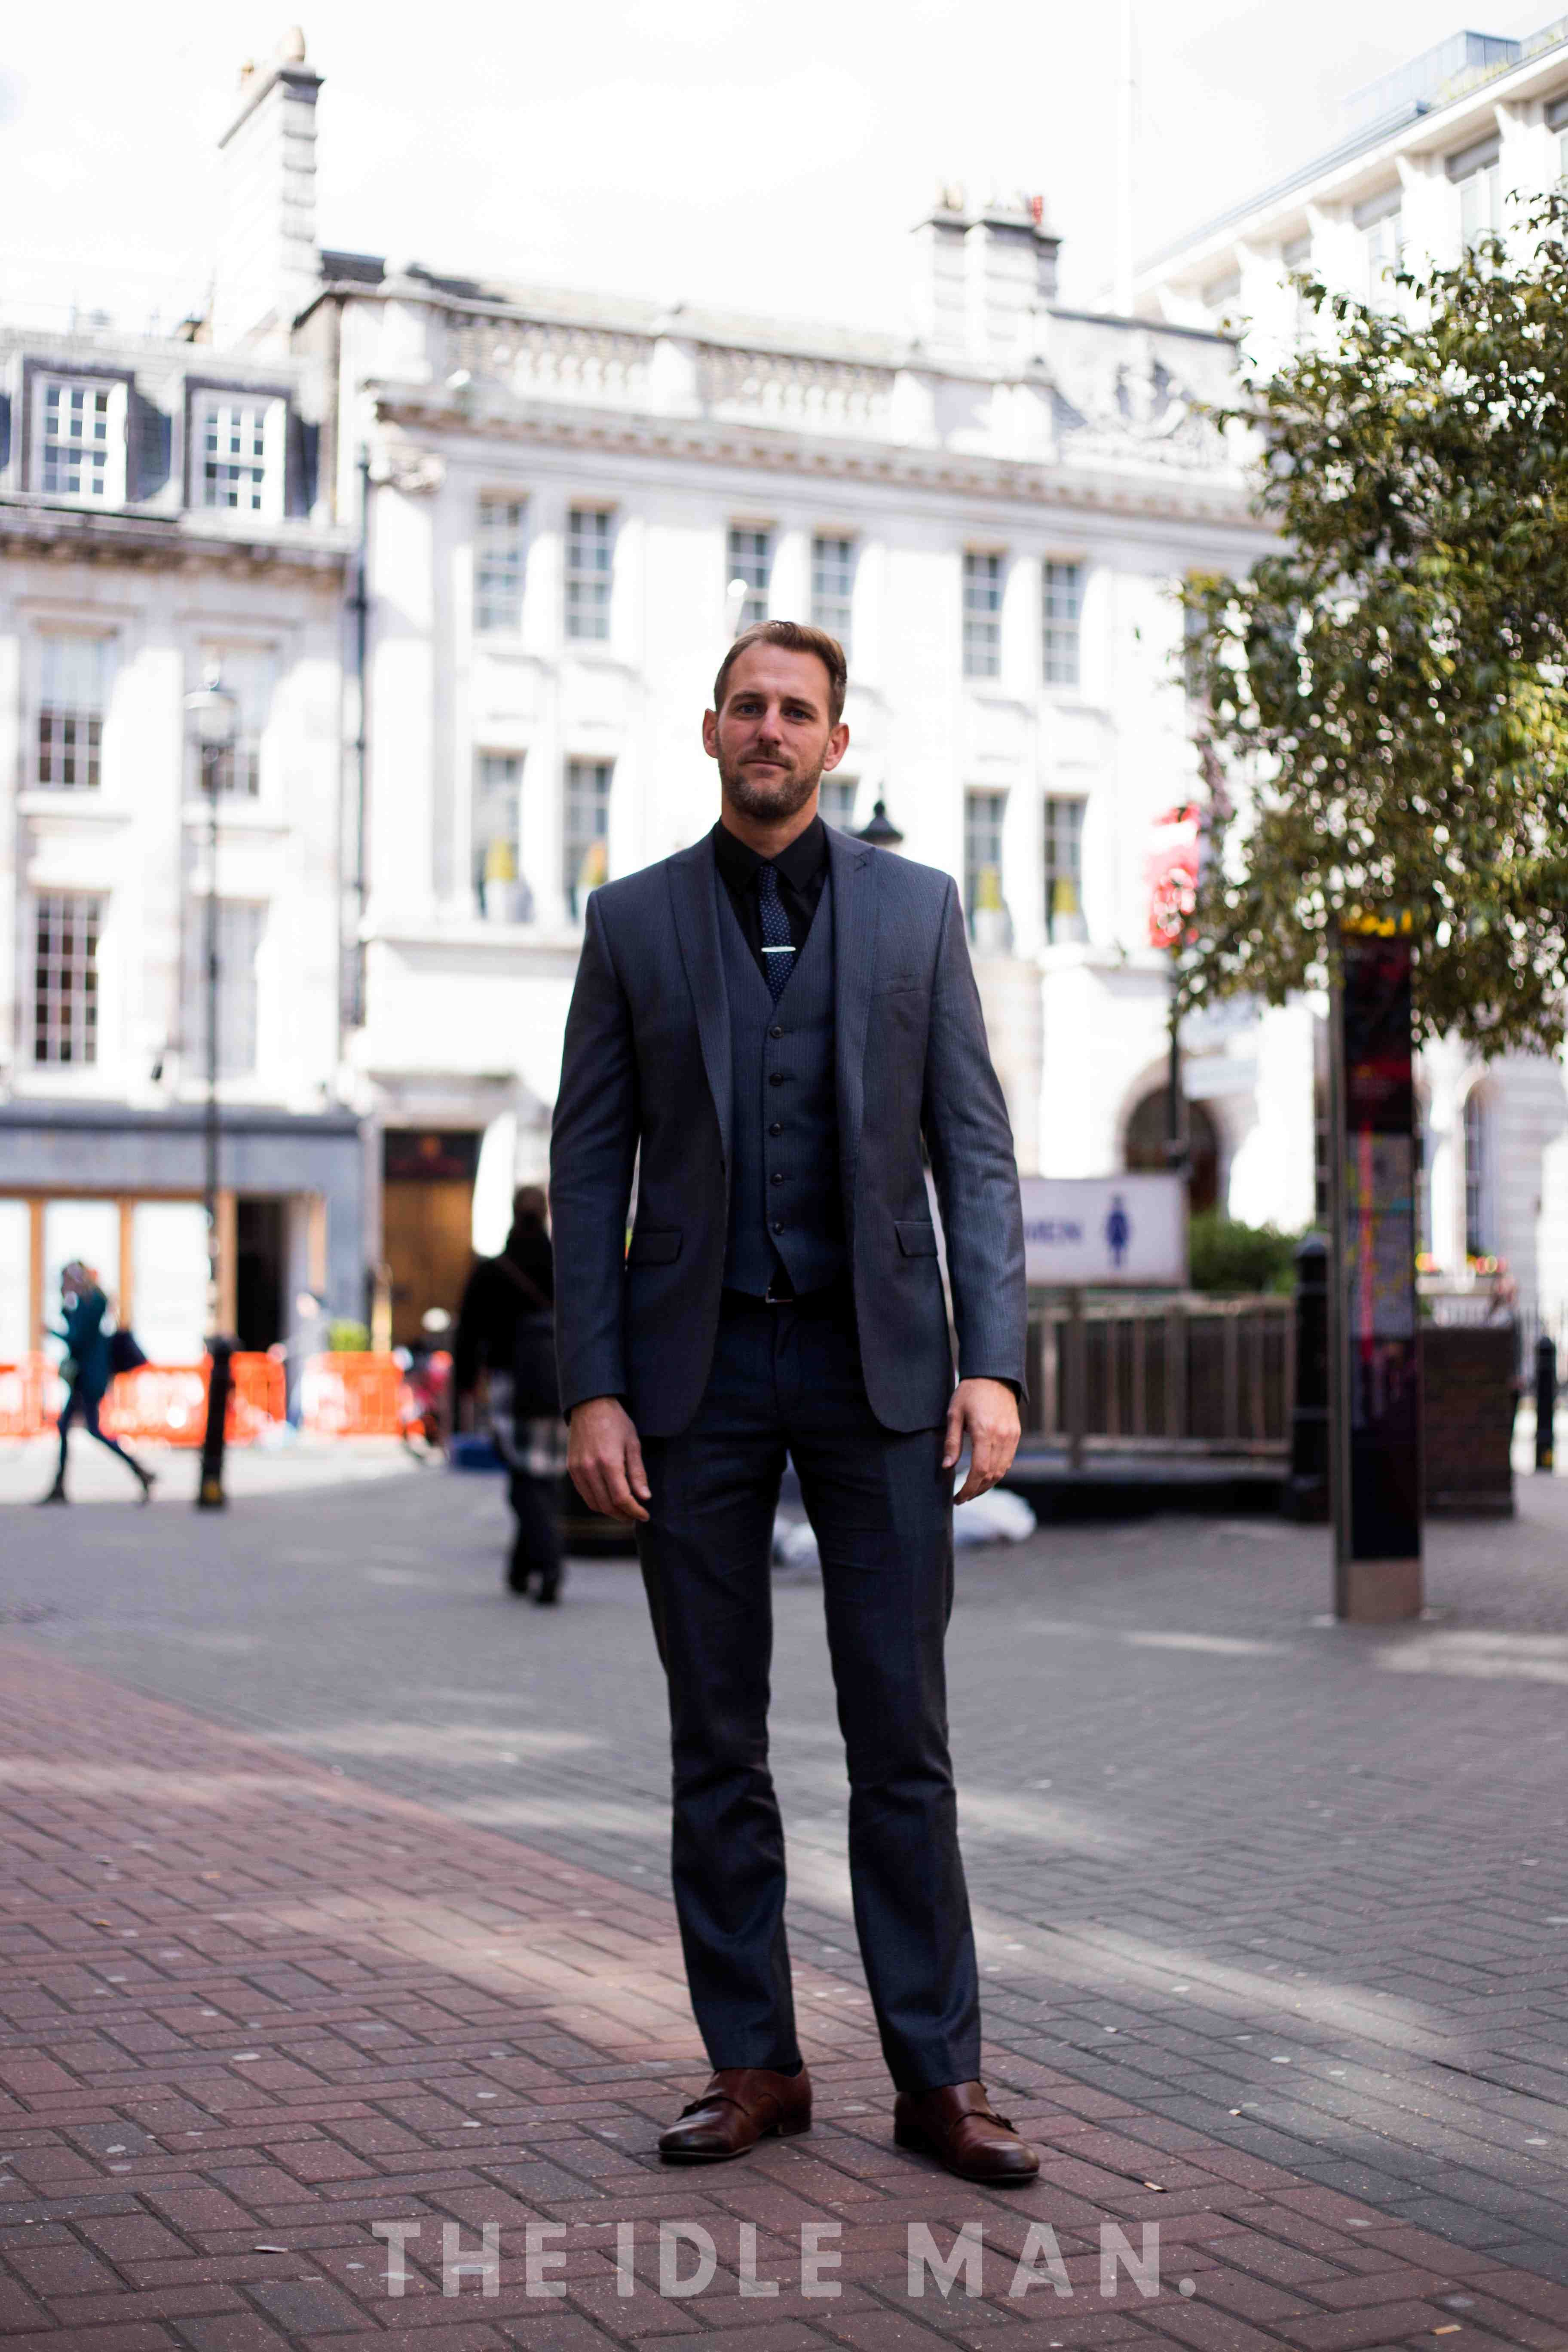 4e4452fc11d23 Men's Street Style - Suit and Boot | clothes | Suits, Street style ...